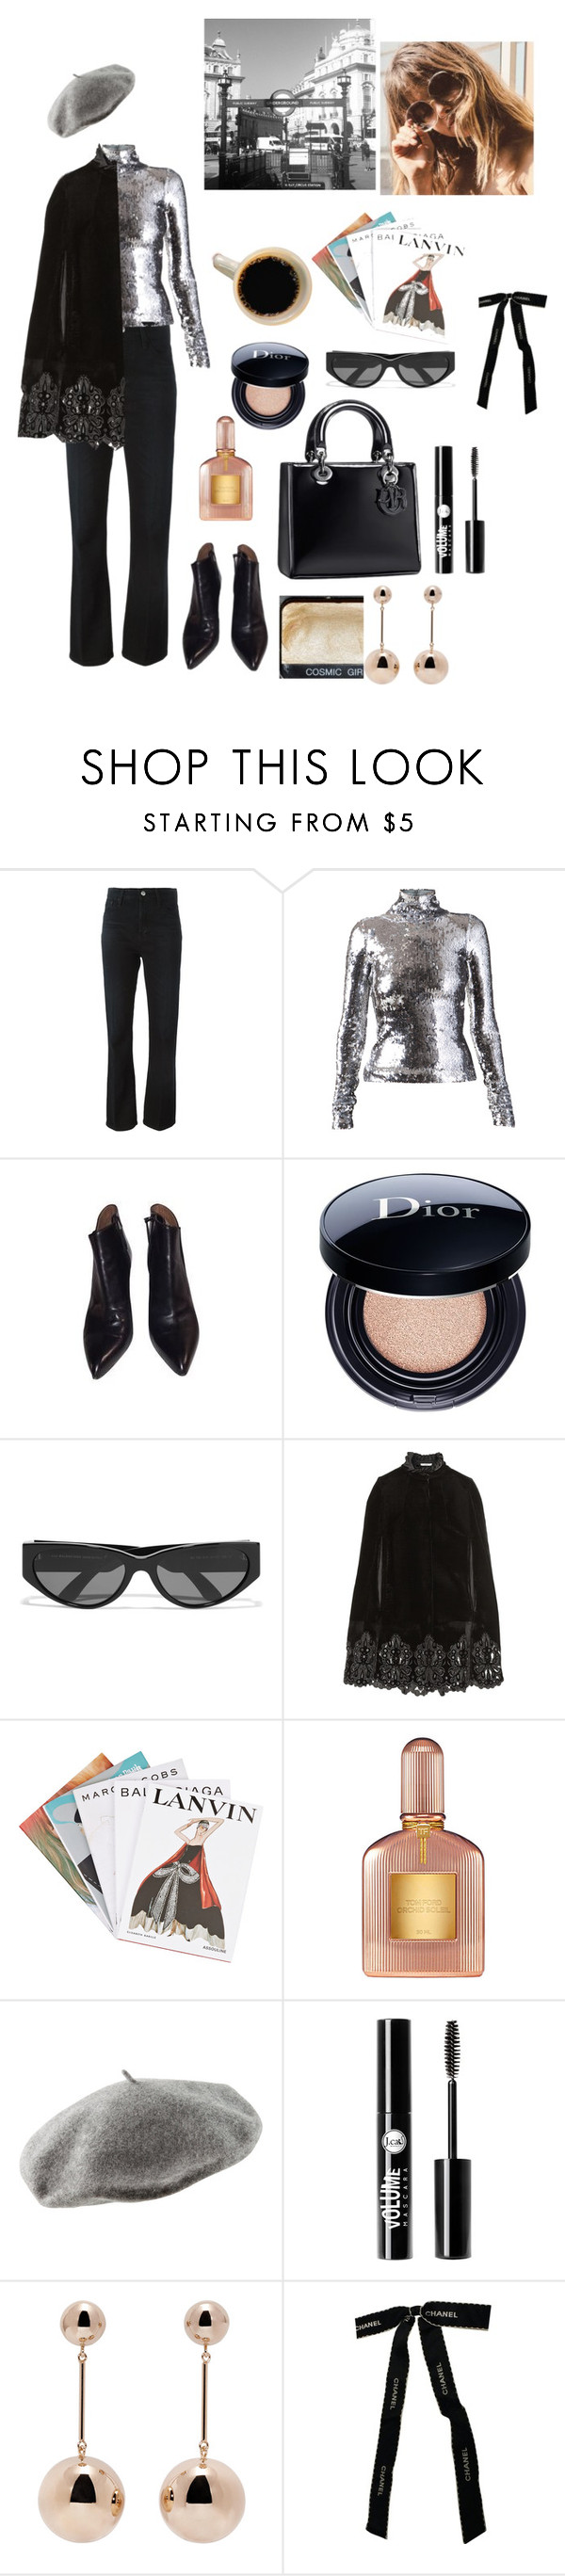 """Untitled #89"" by moudhi-75 ❤ liked on Polyvore featuring AG Adriano Goldschmied, Atto, Alaïa, Christian Dior, Balenciaga, Erdem, Assouline Publishing, Tom Ford, H&M and Charlotte Russe"